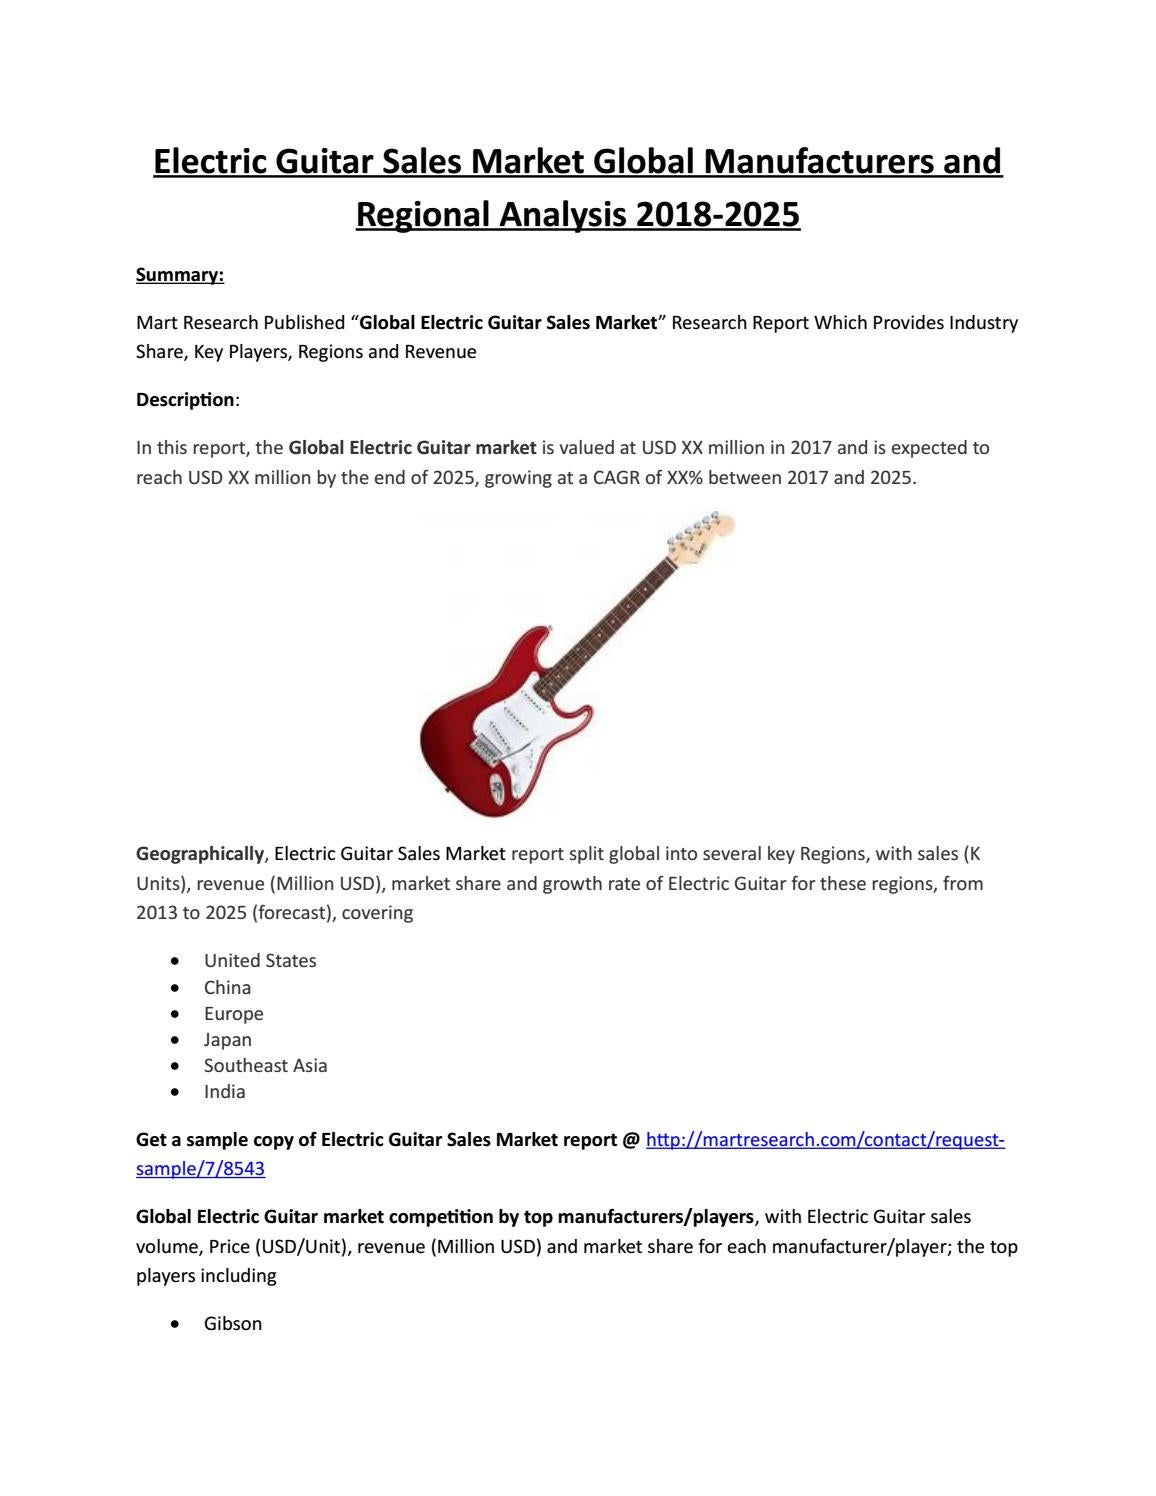 Electric Guitar Market United States Size, Share and Trends